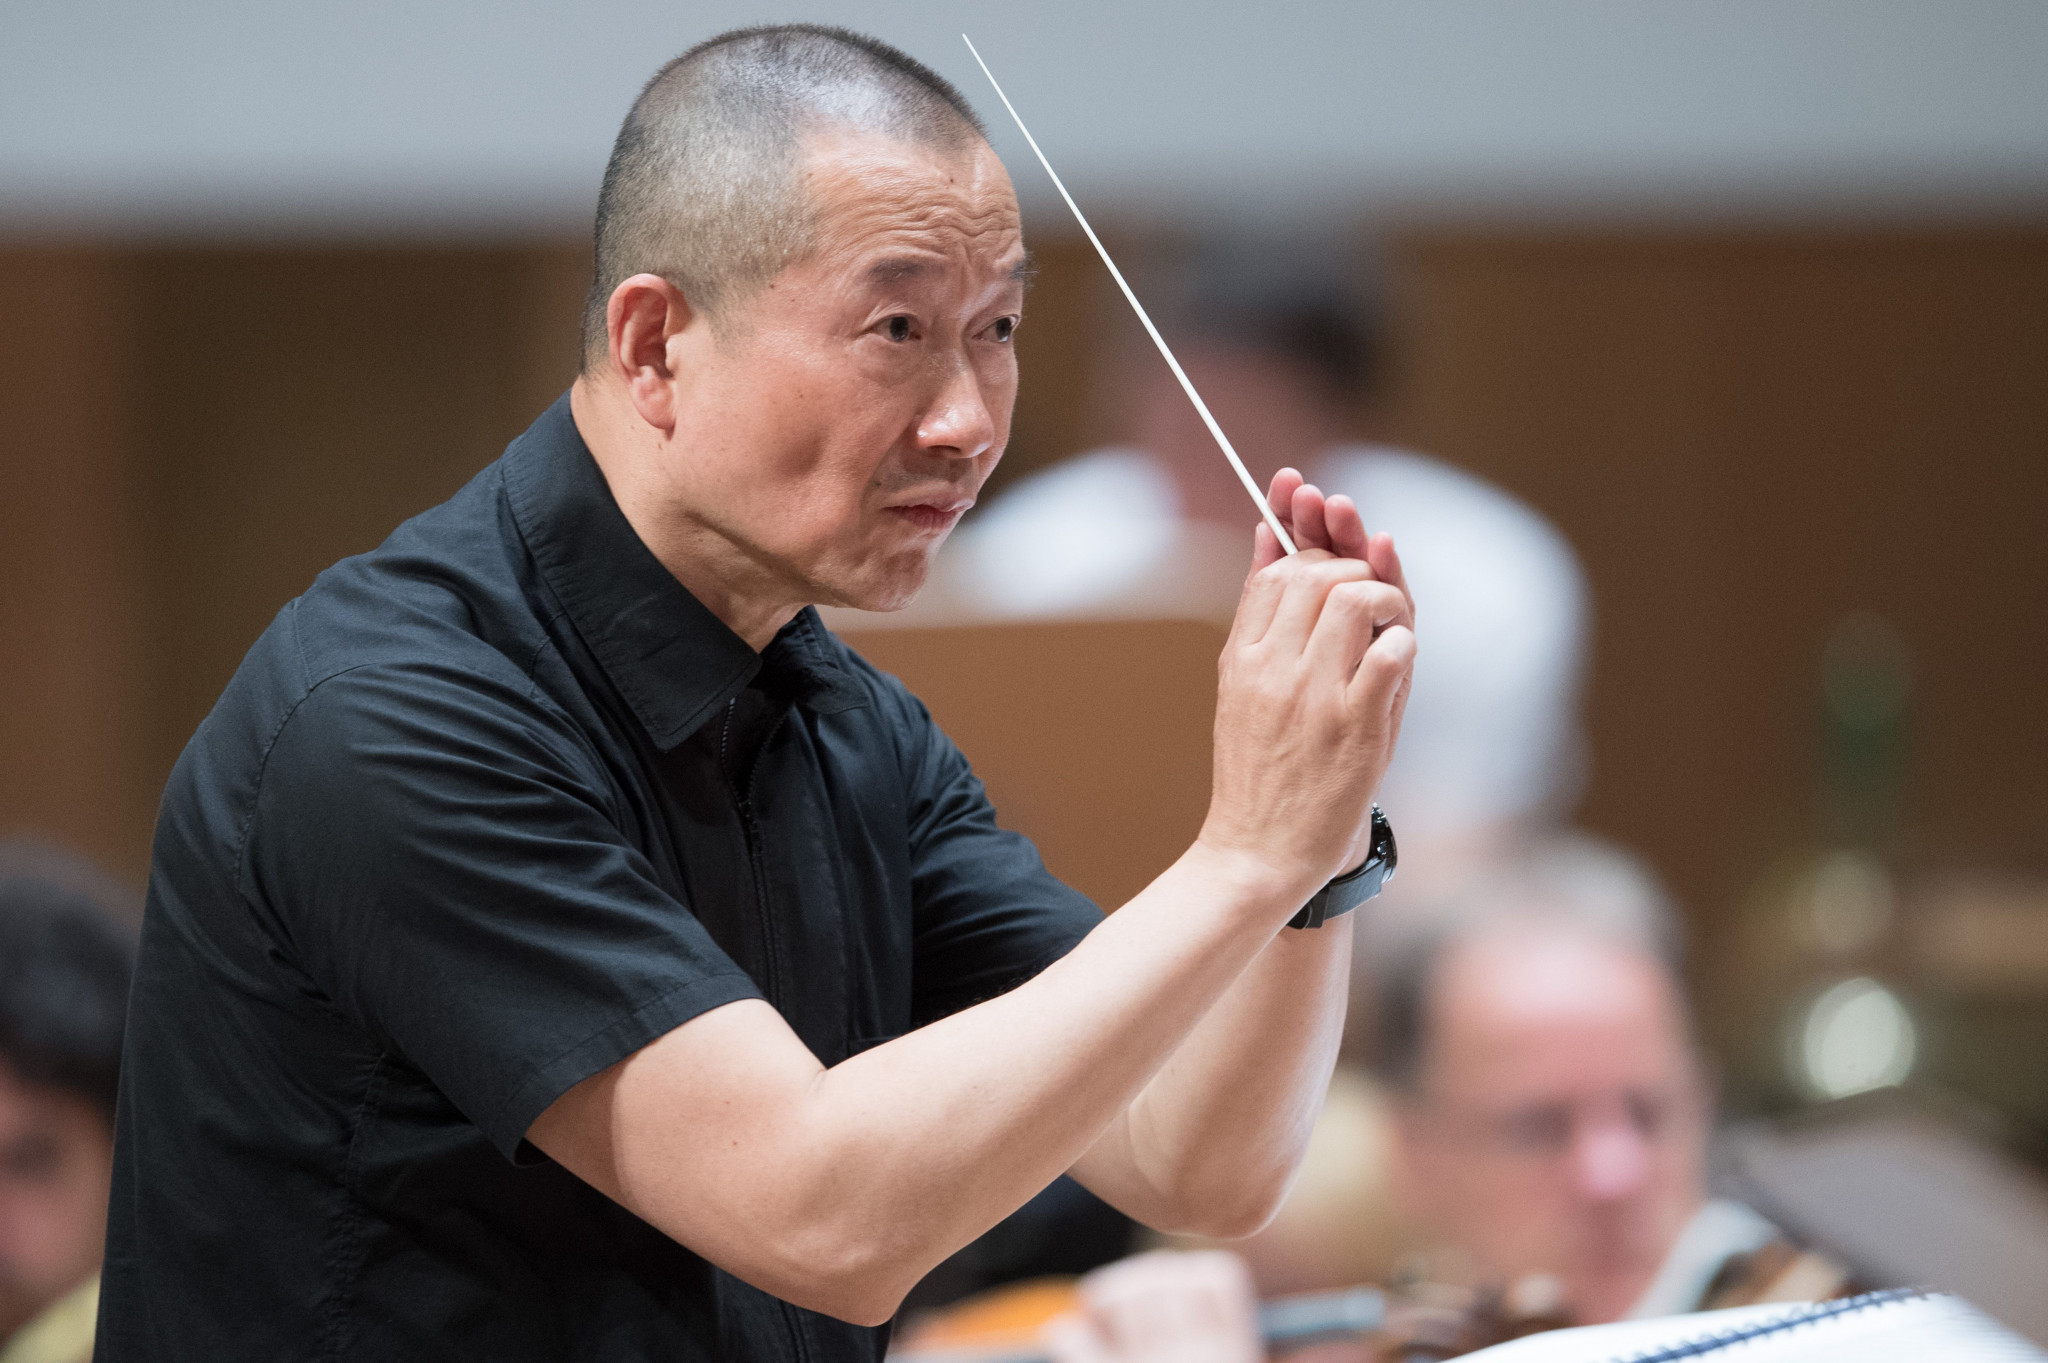 The music director for the event will be composer Tan Dun ©Getty Images